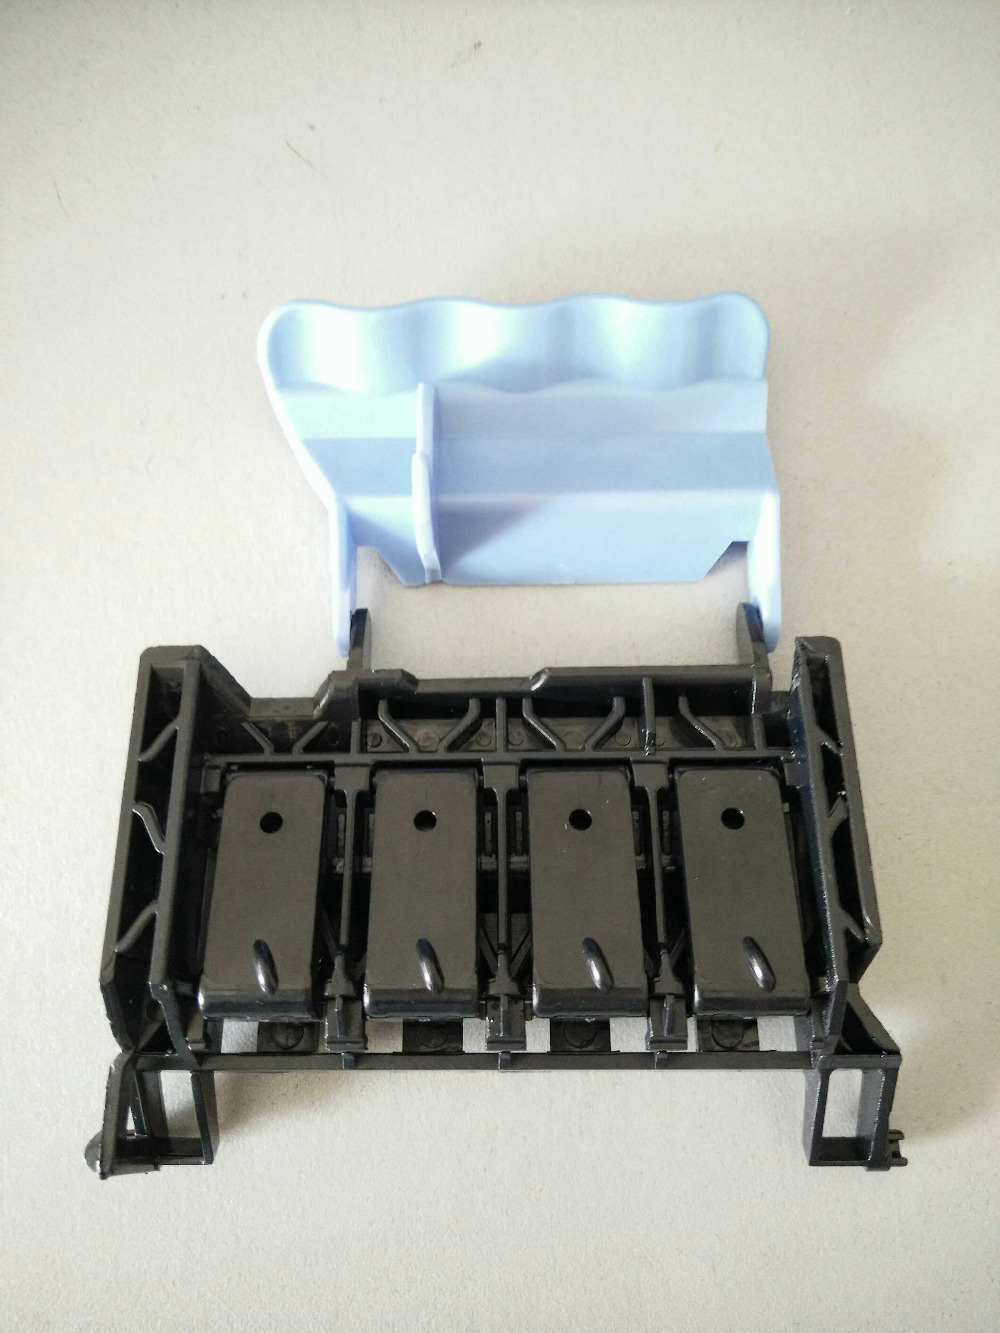 Vilaxh C7769 69376 Printhead Carriage Assembly Cover For HP Plotter 500 800 510 Printer Upper Head Cover